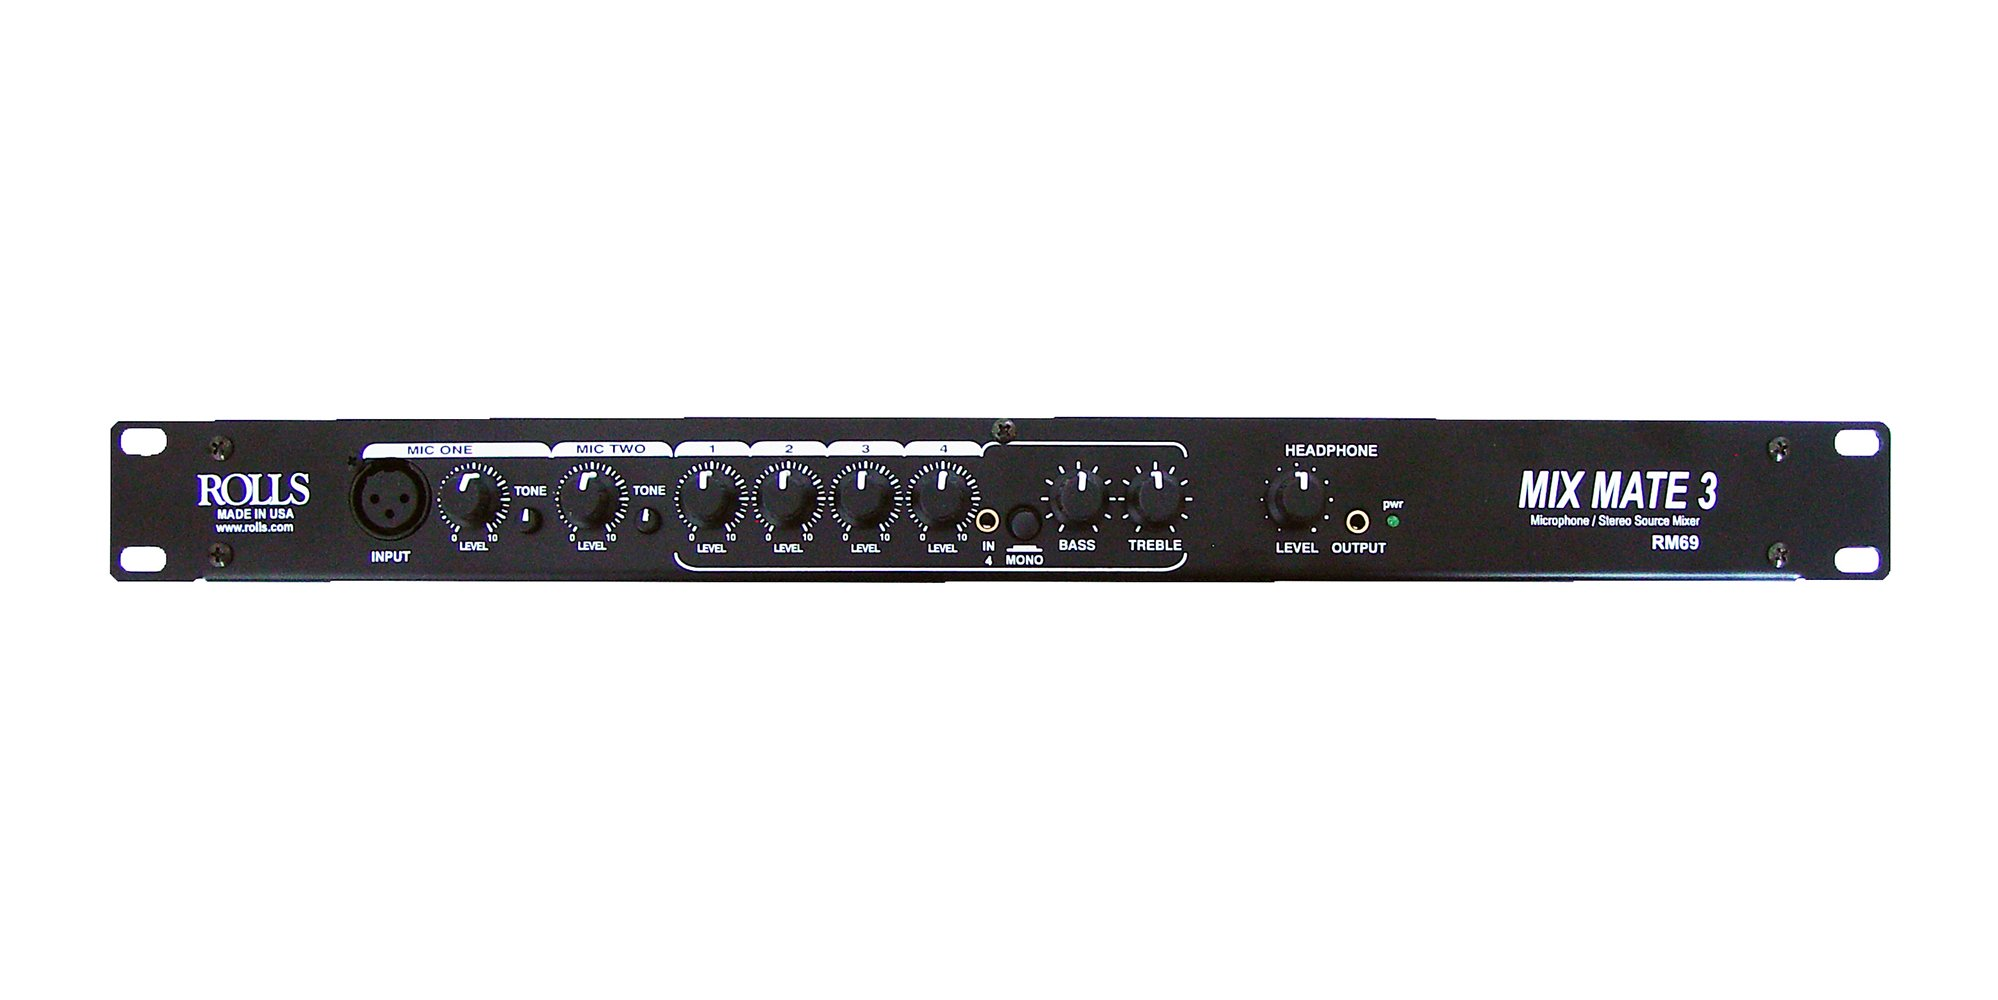 6-Channel Single-Space Rackmount Audio Mixer